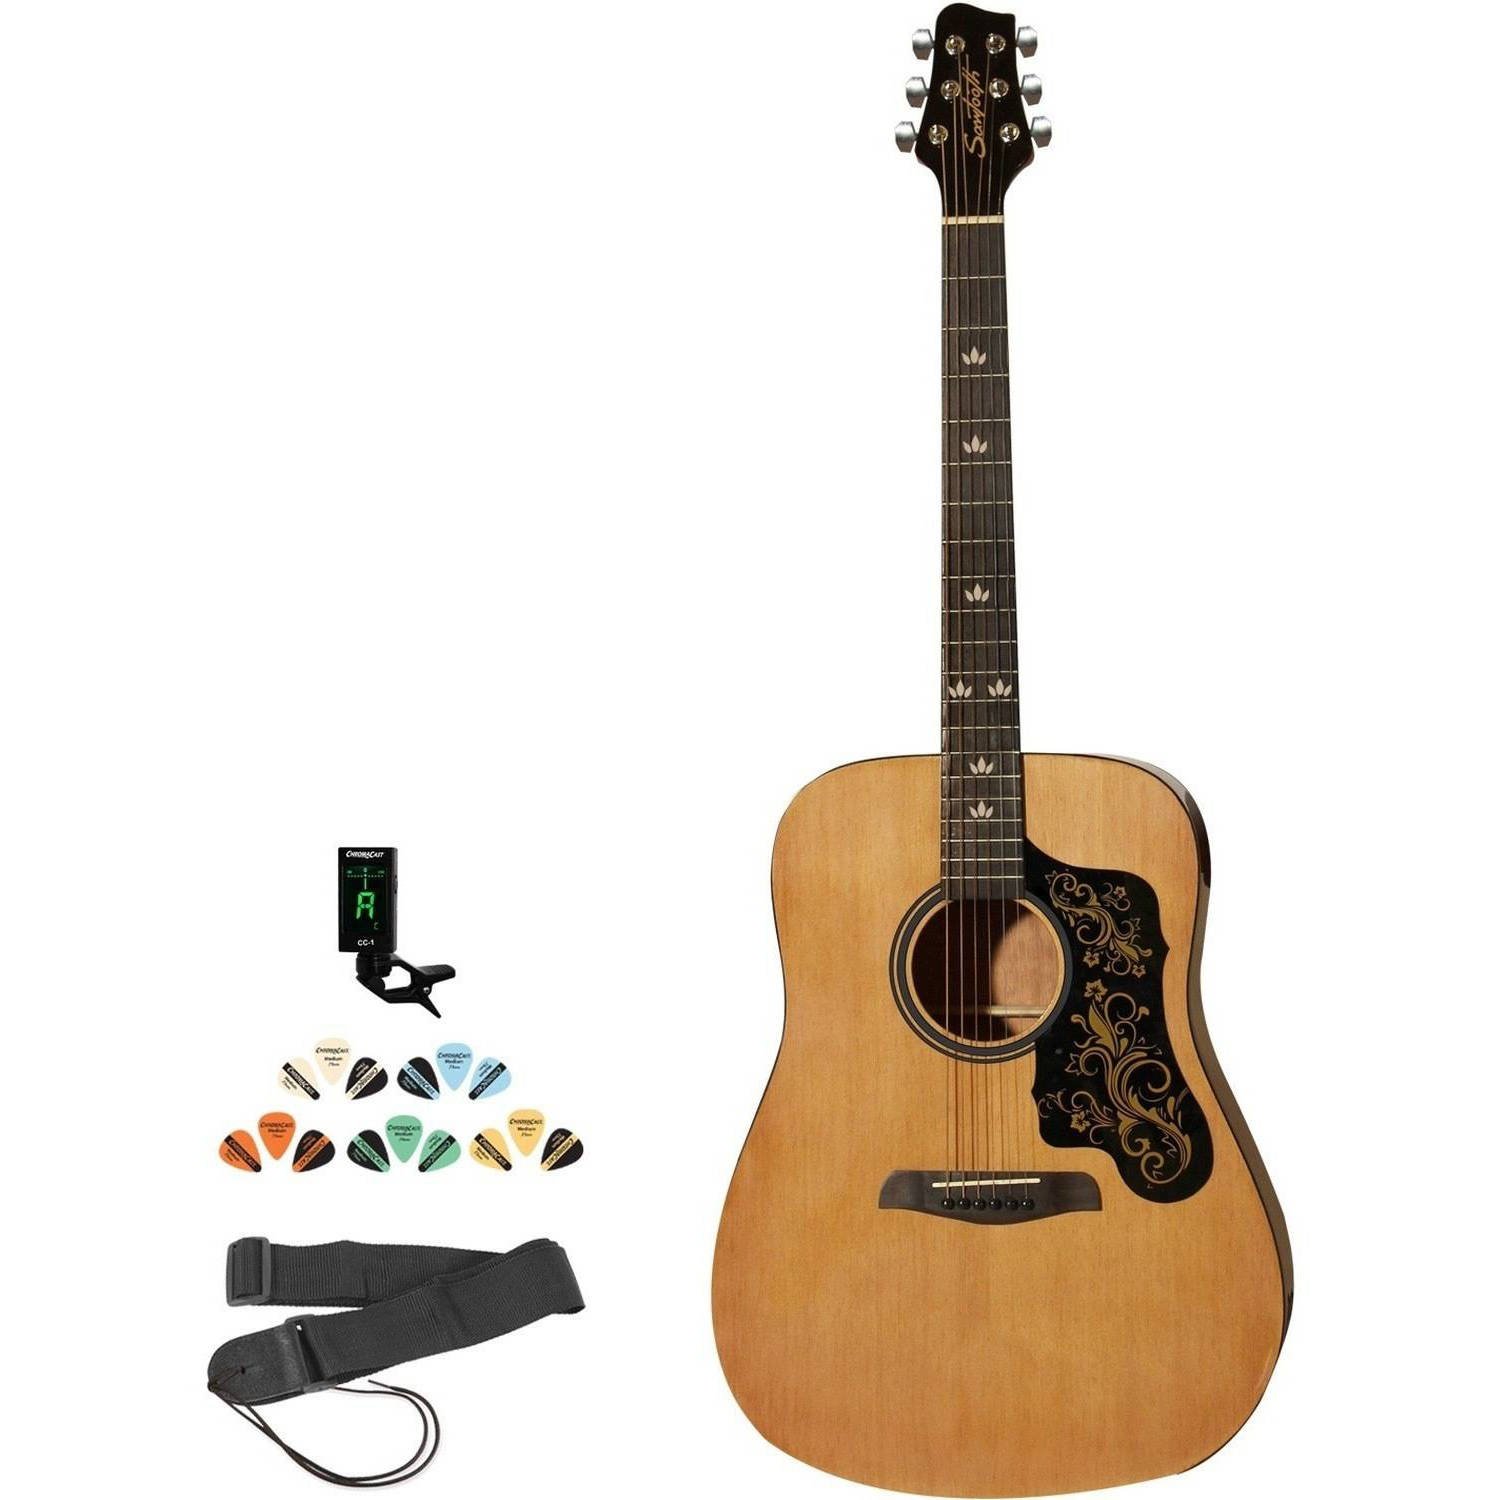 Sawtooth Beginner's Acoustic Dreadnought Guitar with Custom Black Pickguard Kit with ChromaCast Accessories